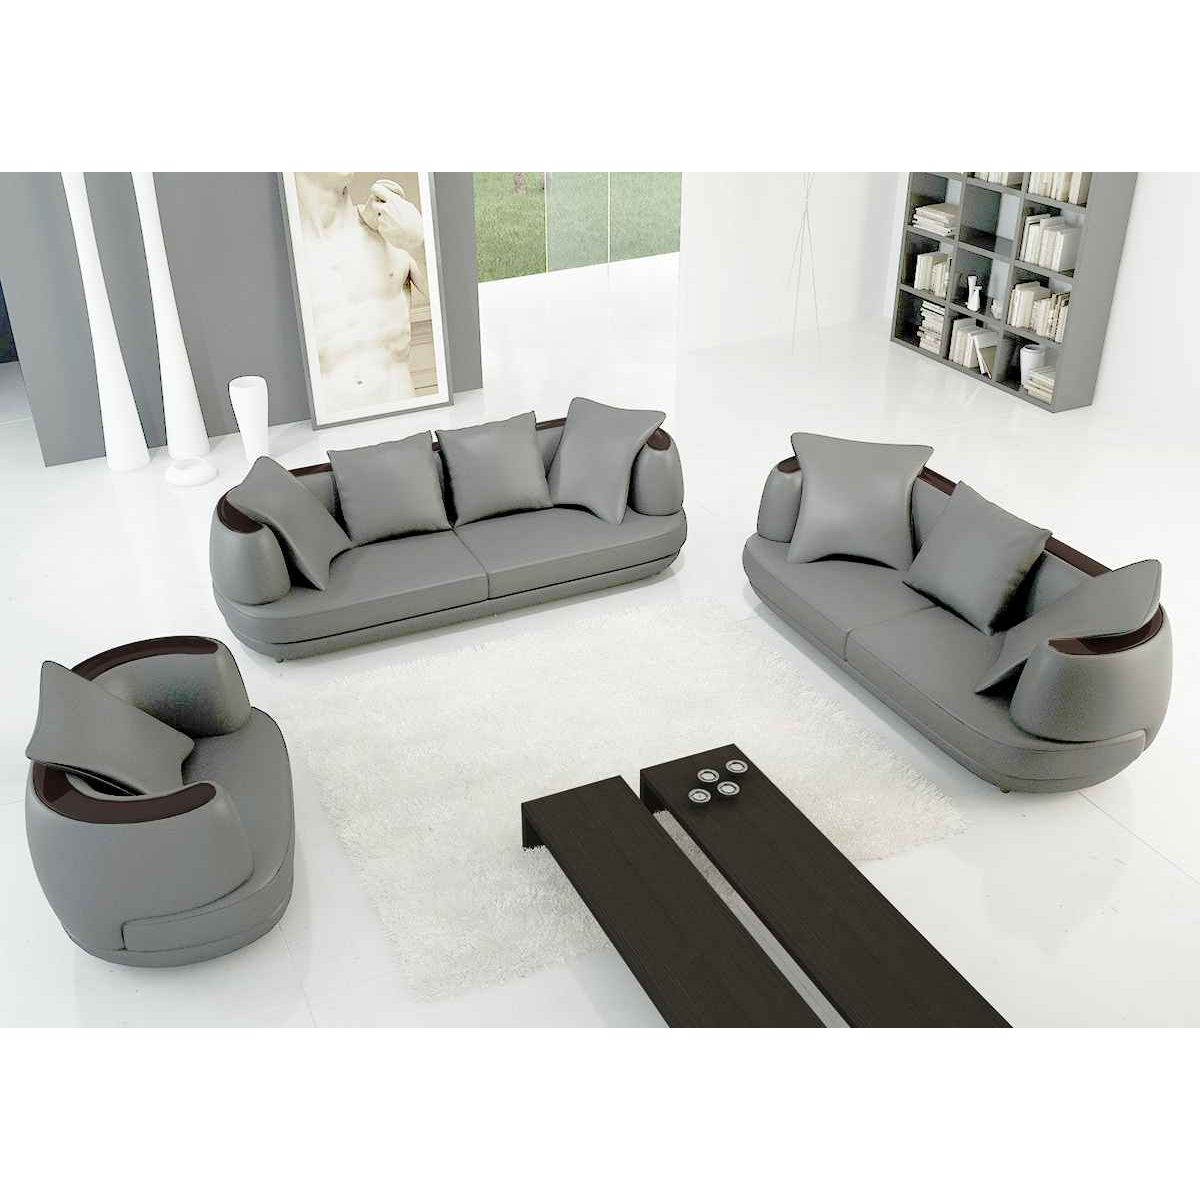 Deco in paris ensemble canape 3 2 1 places en cuir gris - Canape place et place ...